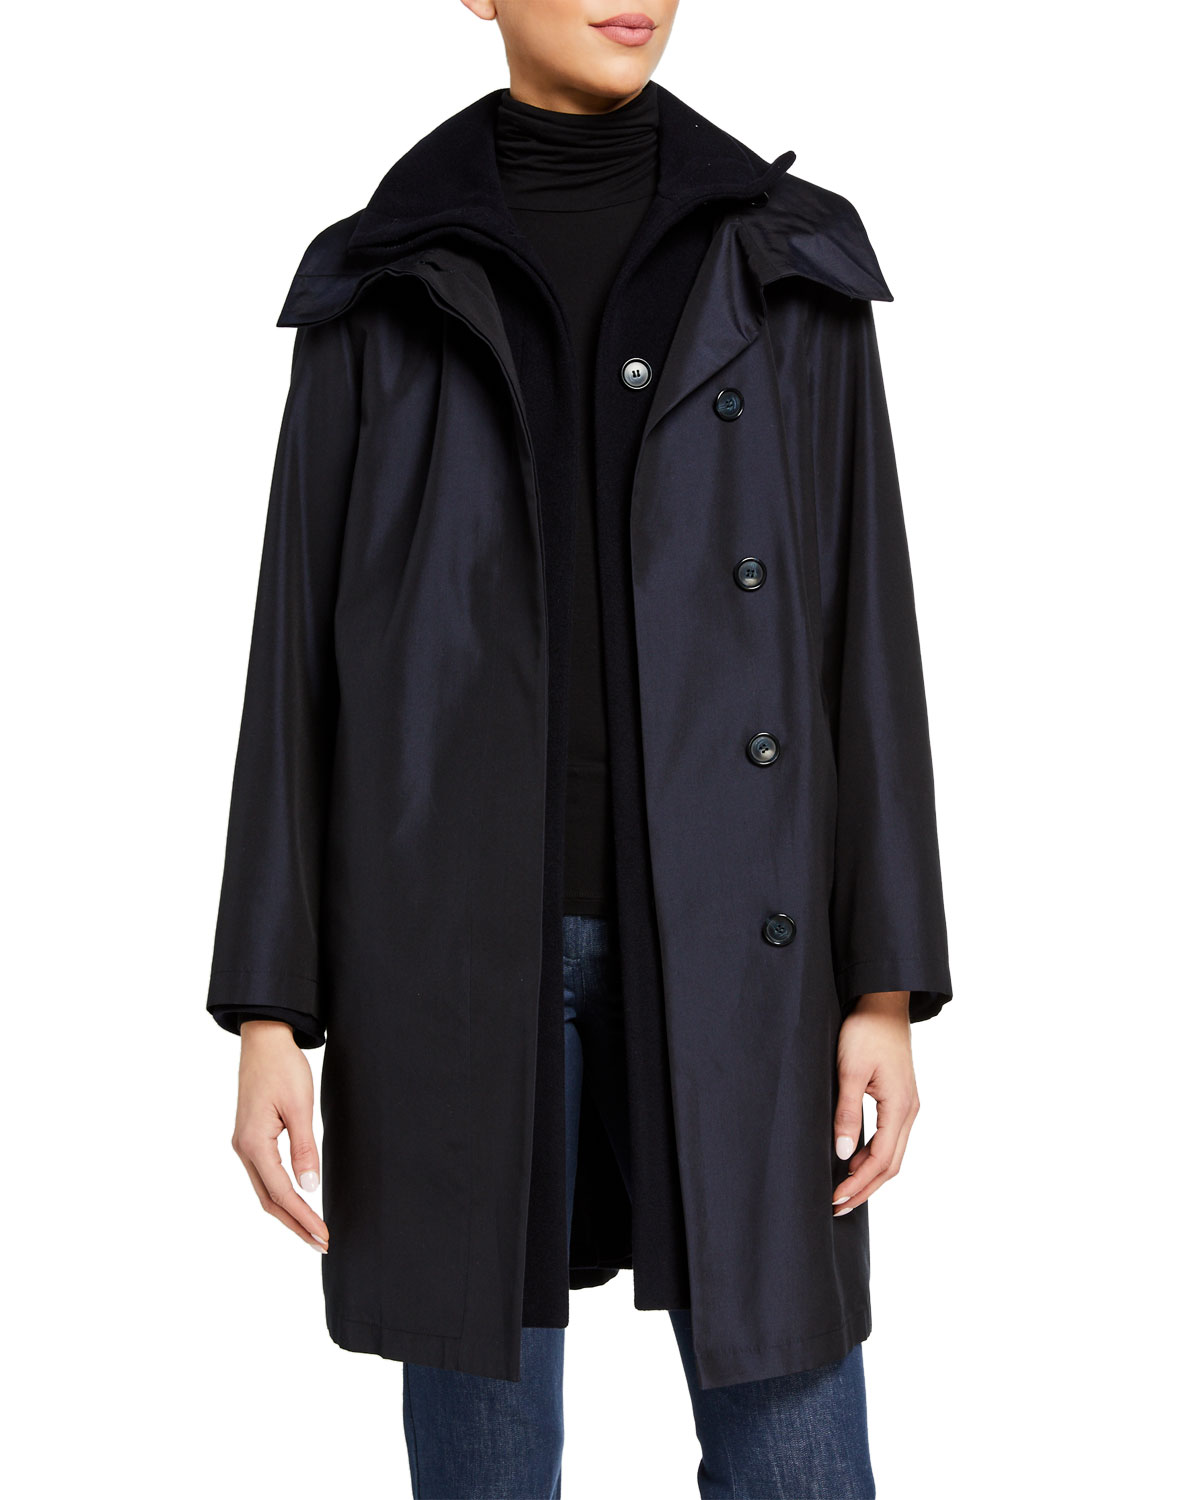 Storm System Double-Breasted Coat